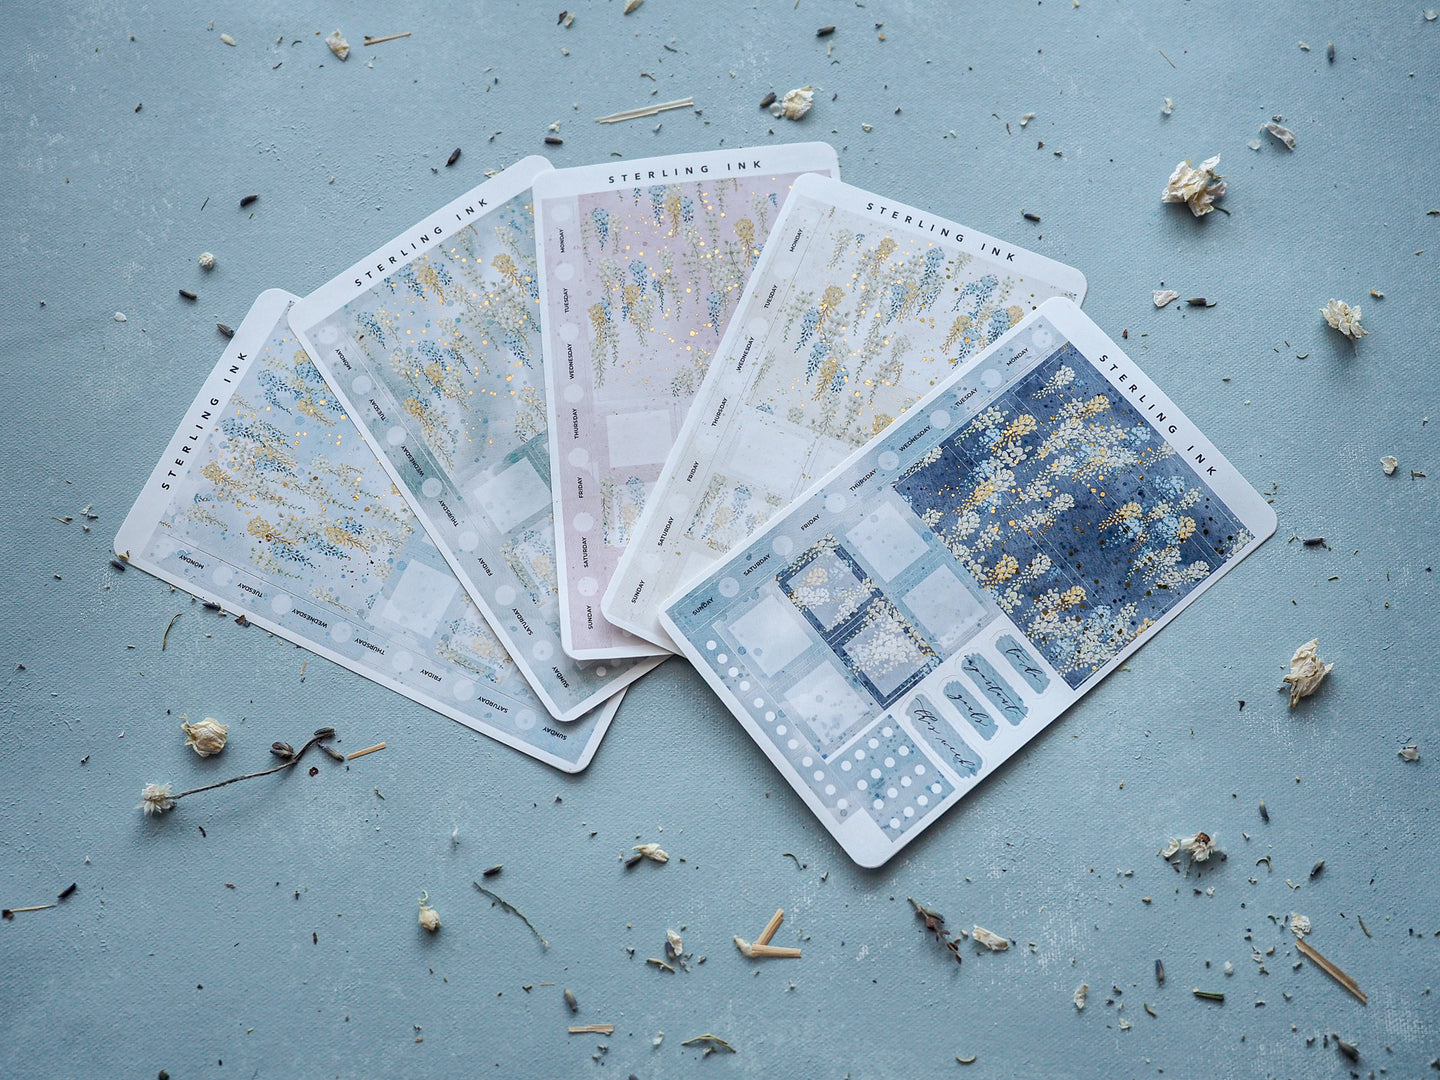 Hobonichi Weeks Weekly Kit - May Wisteria Floral Stickers - Gold Foil